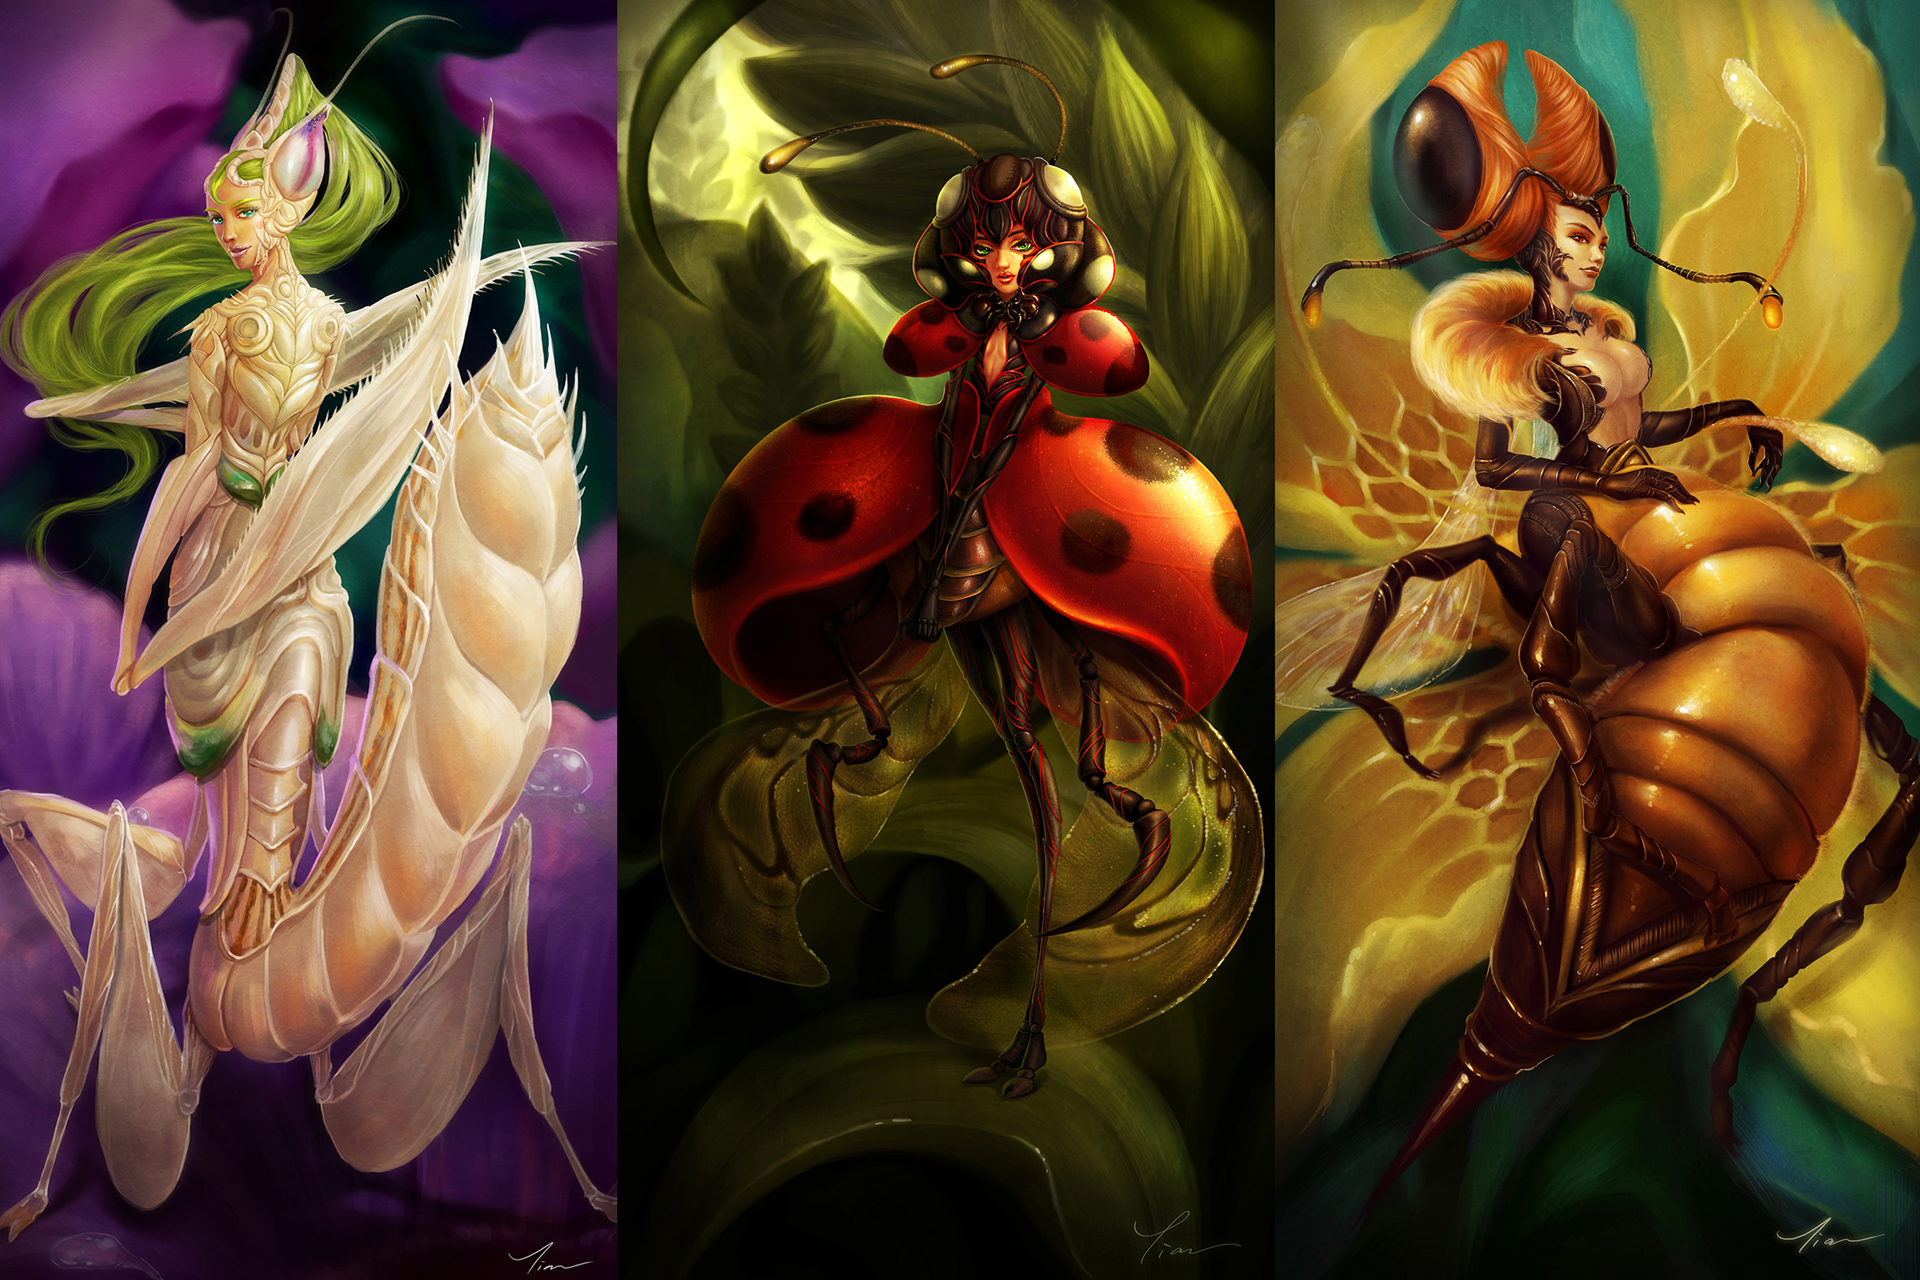 wallpaper - insect beauty collection I by yangtianli